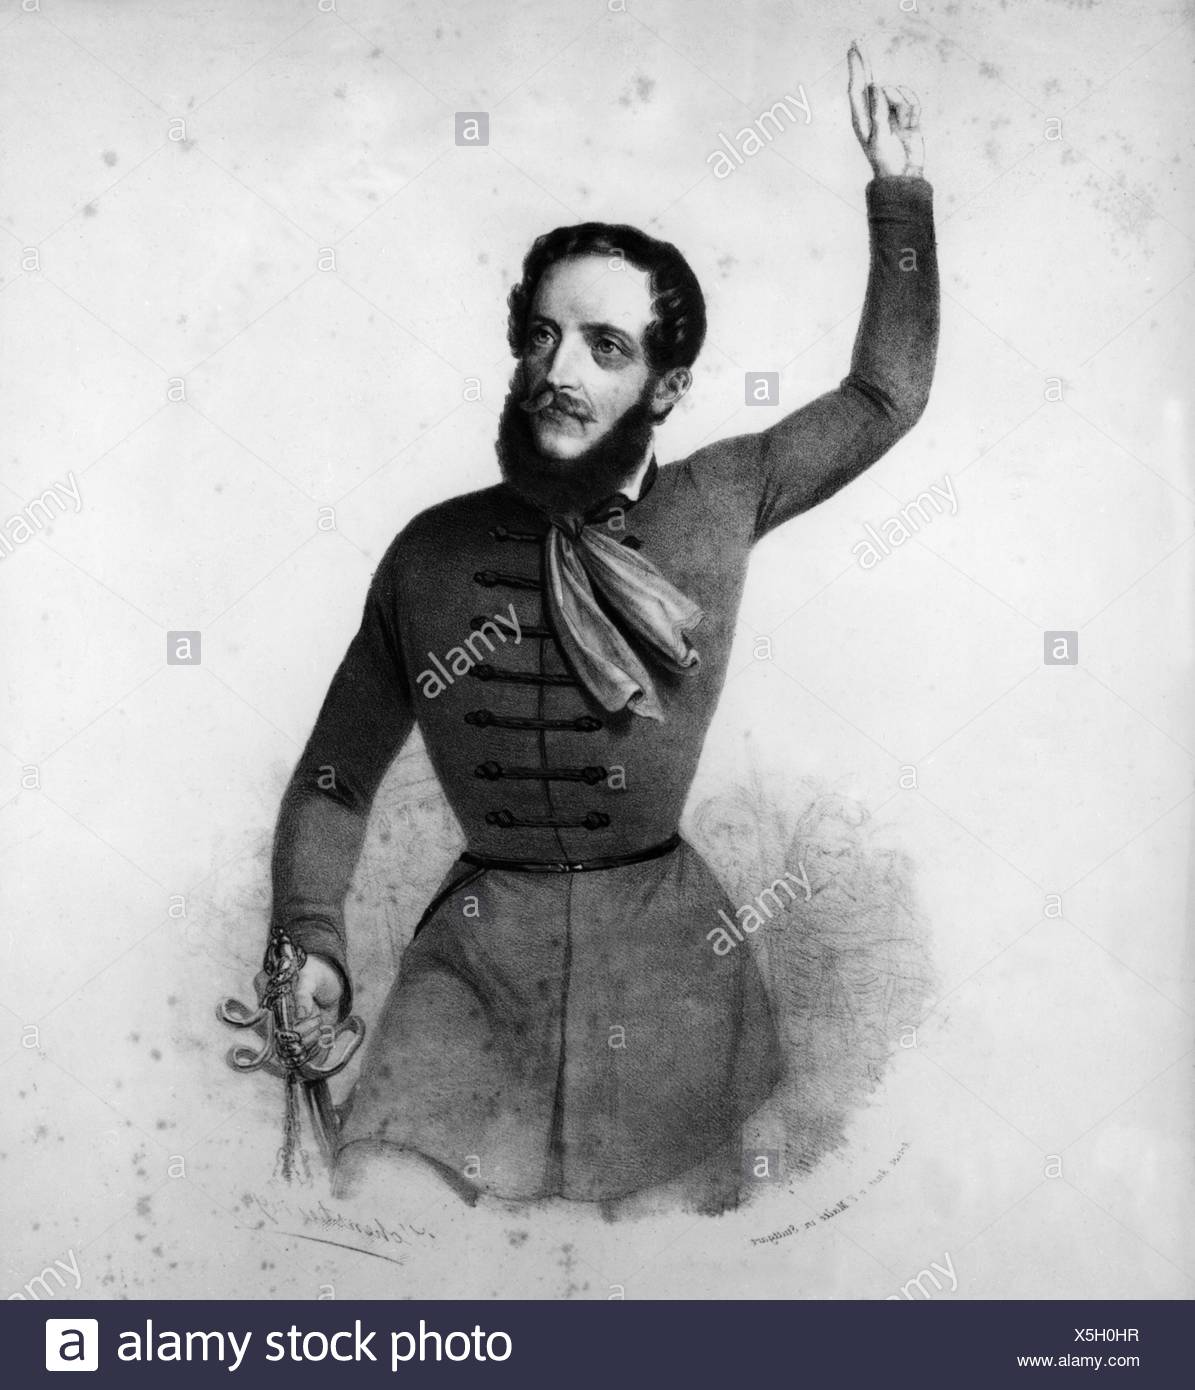 Kossuth, Lajos, 16.9.1802 - 20.3.1894, Hungarian politician, Regent-President of Hungary in 1849, half length, contemporary lithograph, 19th century, Stock Photo